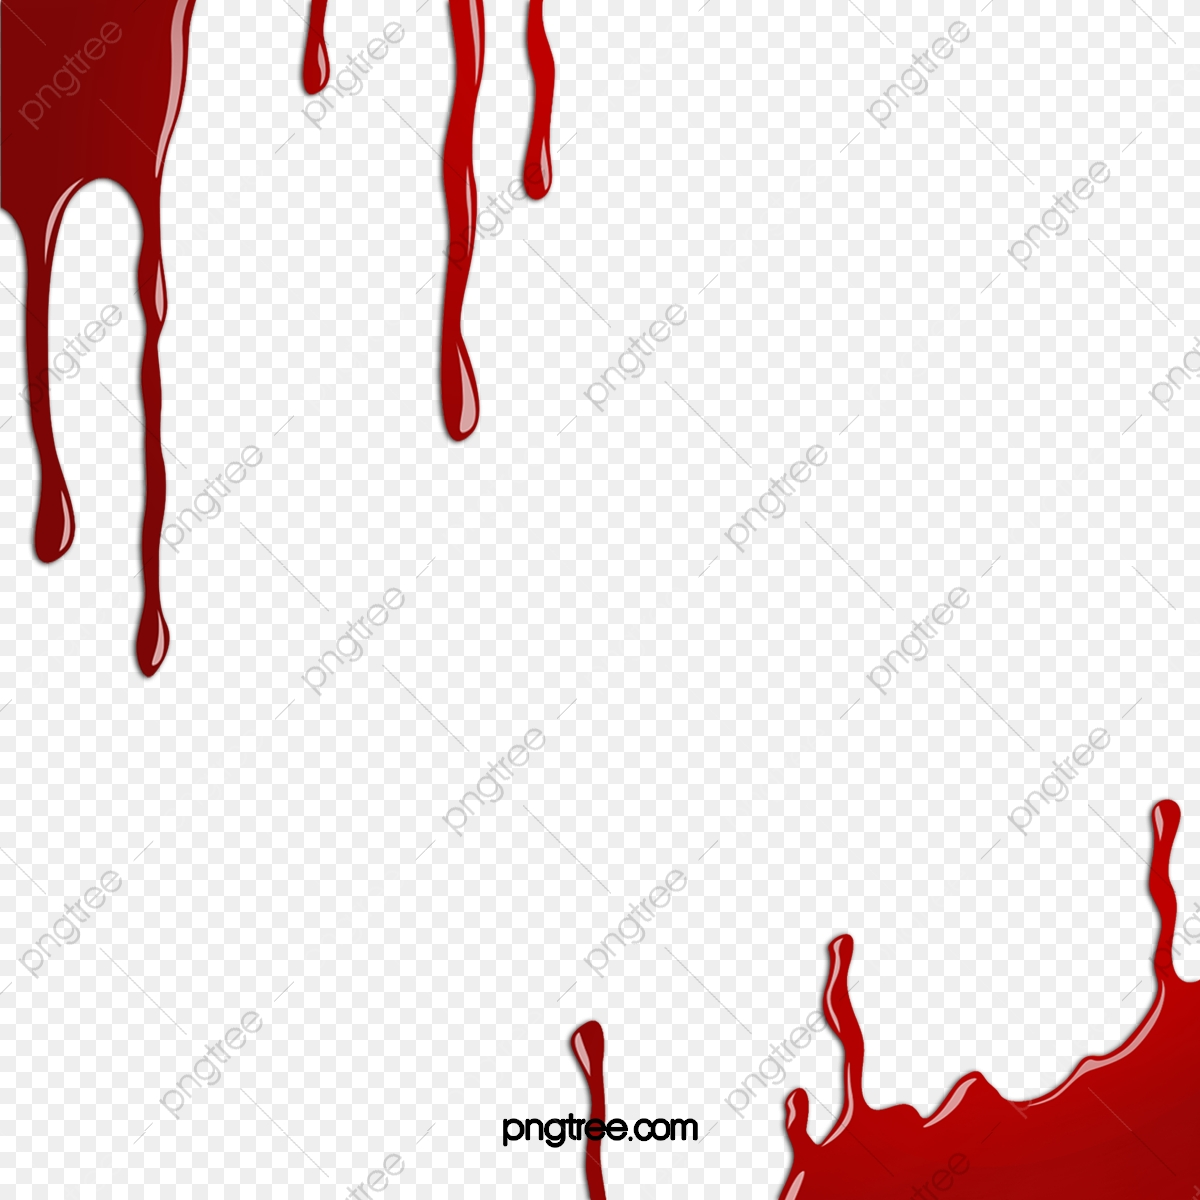 Red Dripping Blood Texture Red Droplet Spatter Png Transparent Clipart Image And Psd File For Free Download # blood, brushes, glossy, photoshop, splatter. https pngtree com freepng red dripping blood texture 5162980 html